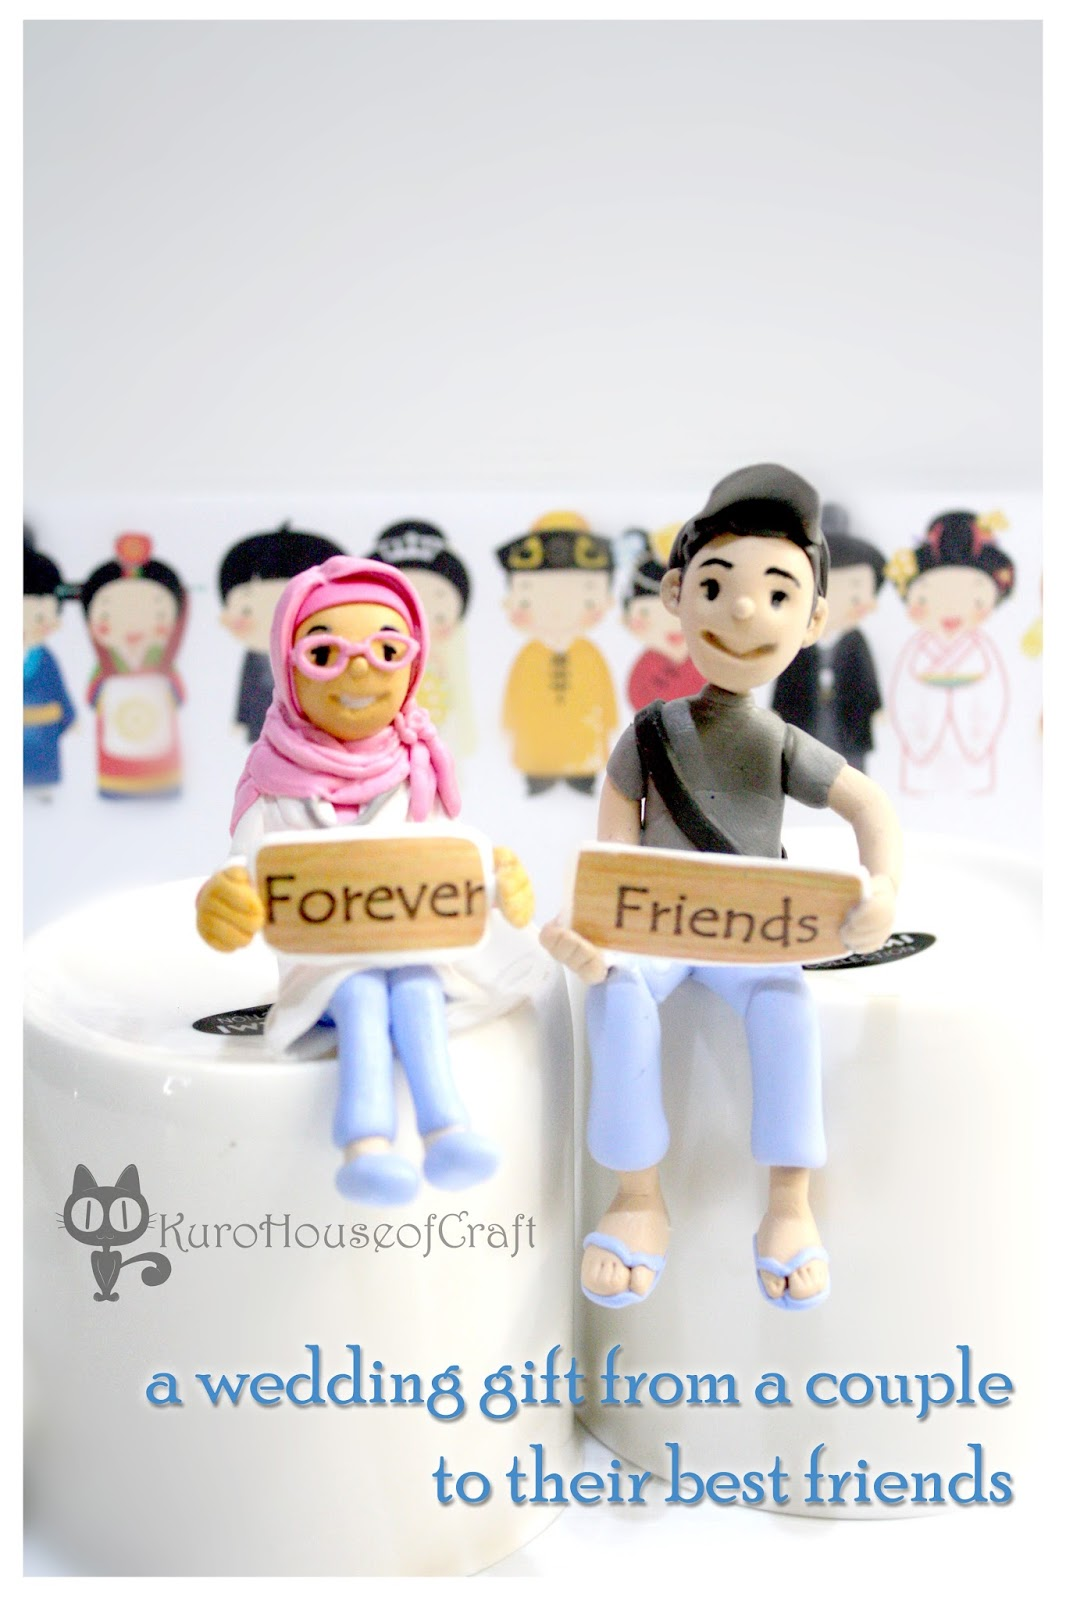 Kurohouse Of Craft Wedding Gift From Couple To Their Best Friends